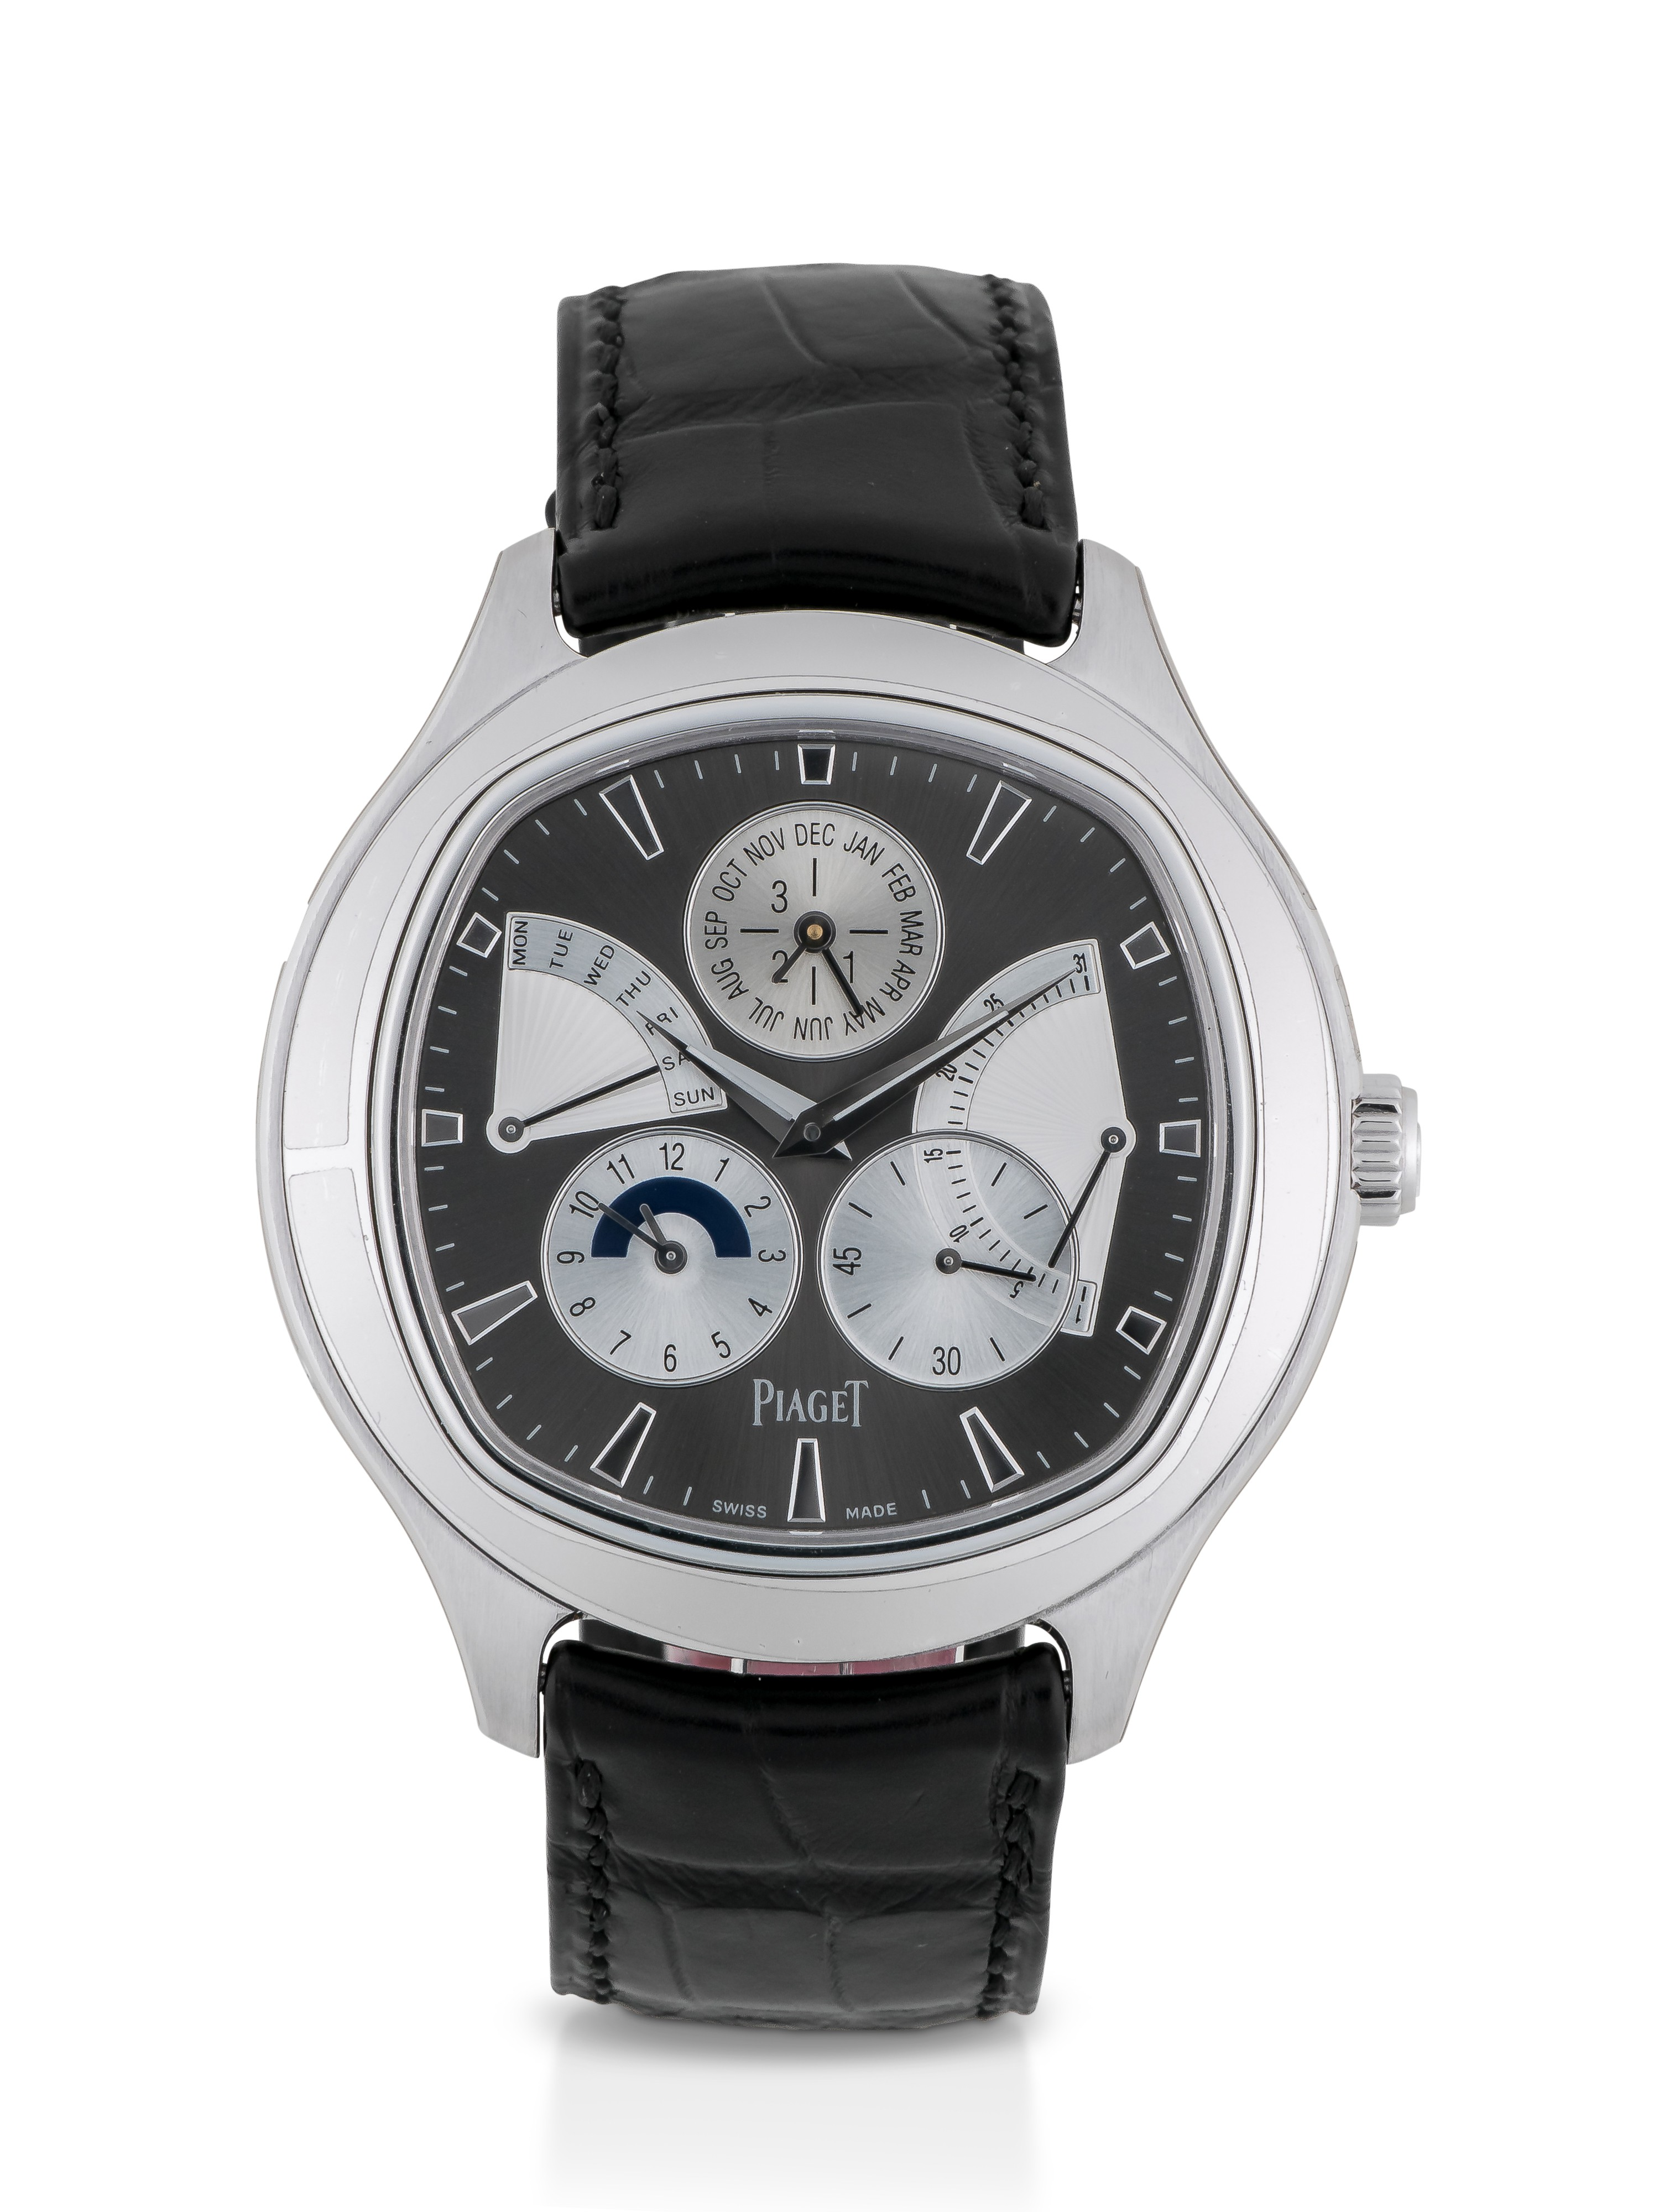 PIAGET | EMPERADOR, REF P10533 LIMITED EDITION WHITE GOLD PERPETUAL CALENDAR WRISTWATCH WITH LEAP-YEAR AND 24-HOUR INDICATION CIRCA 2016